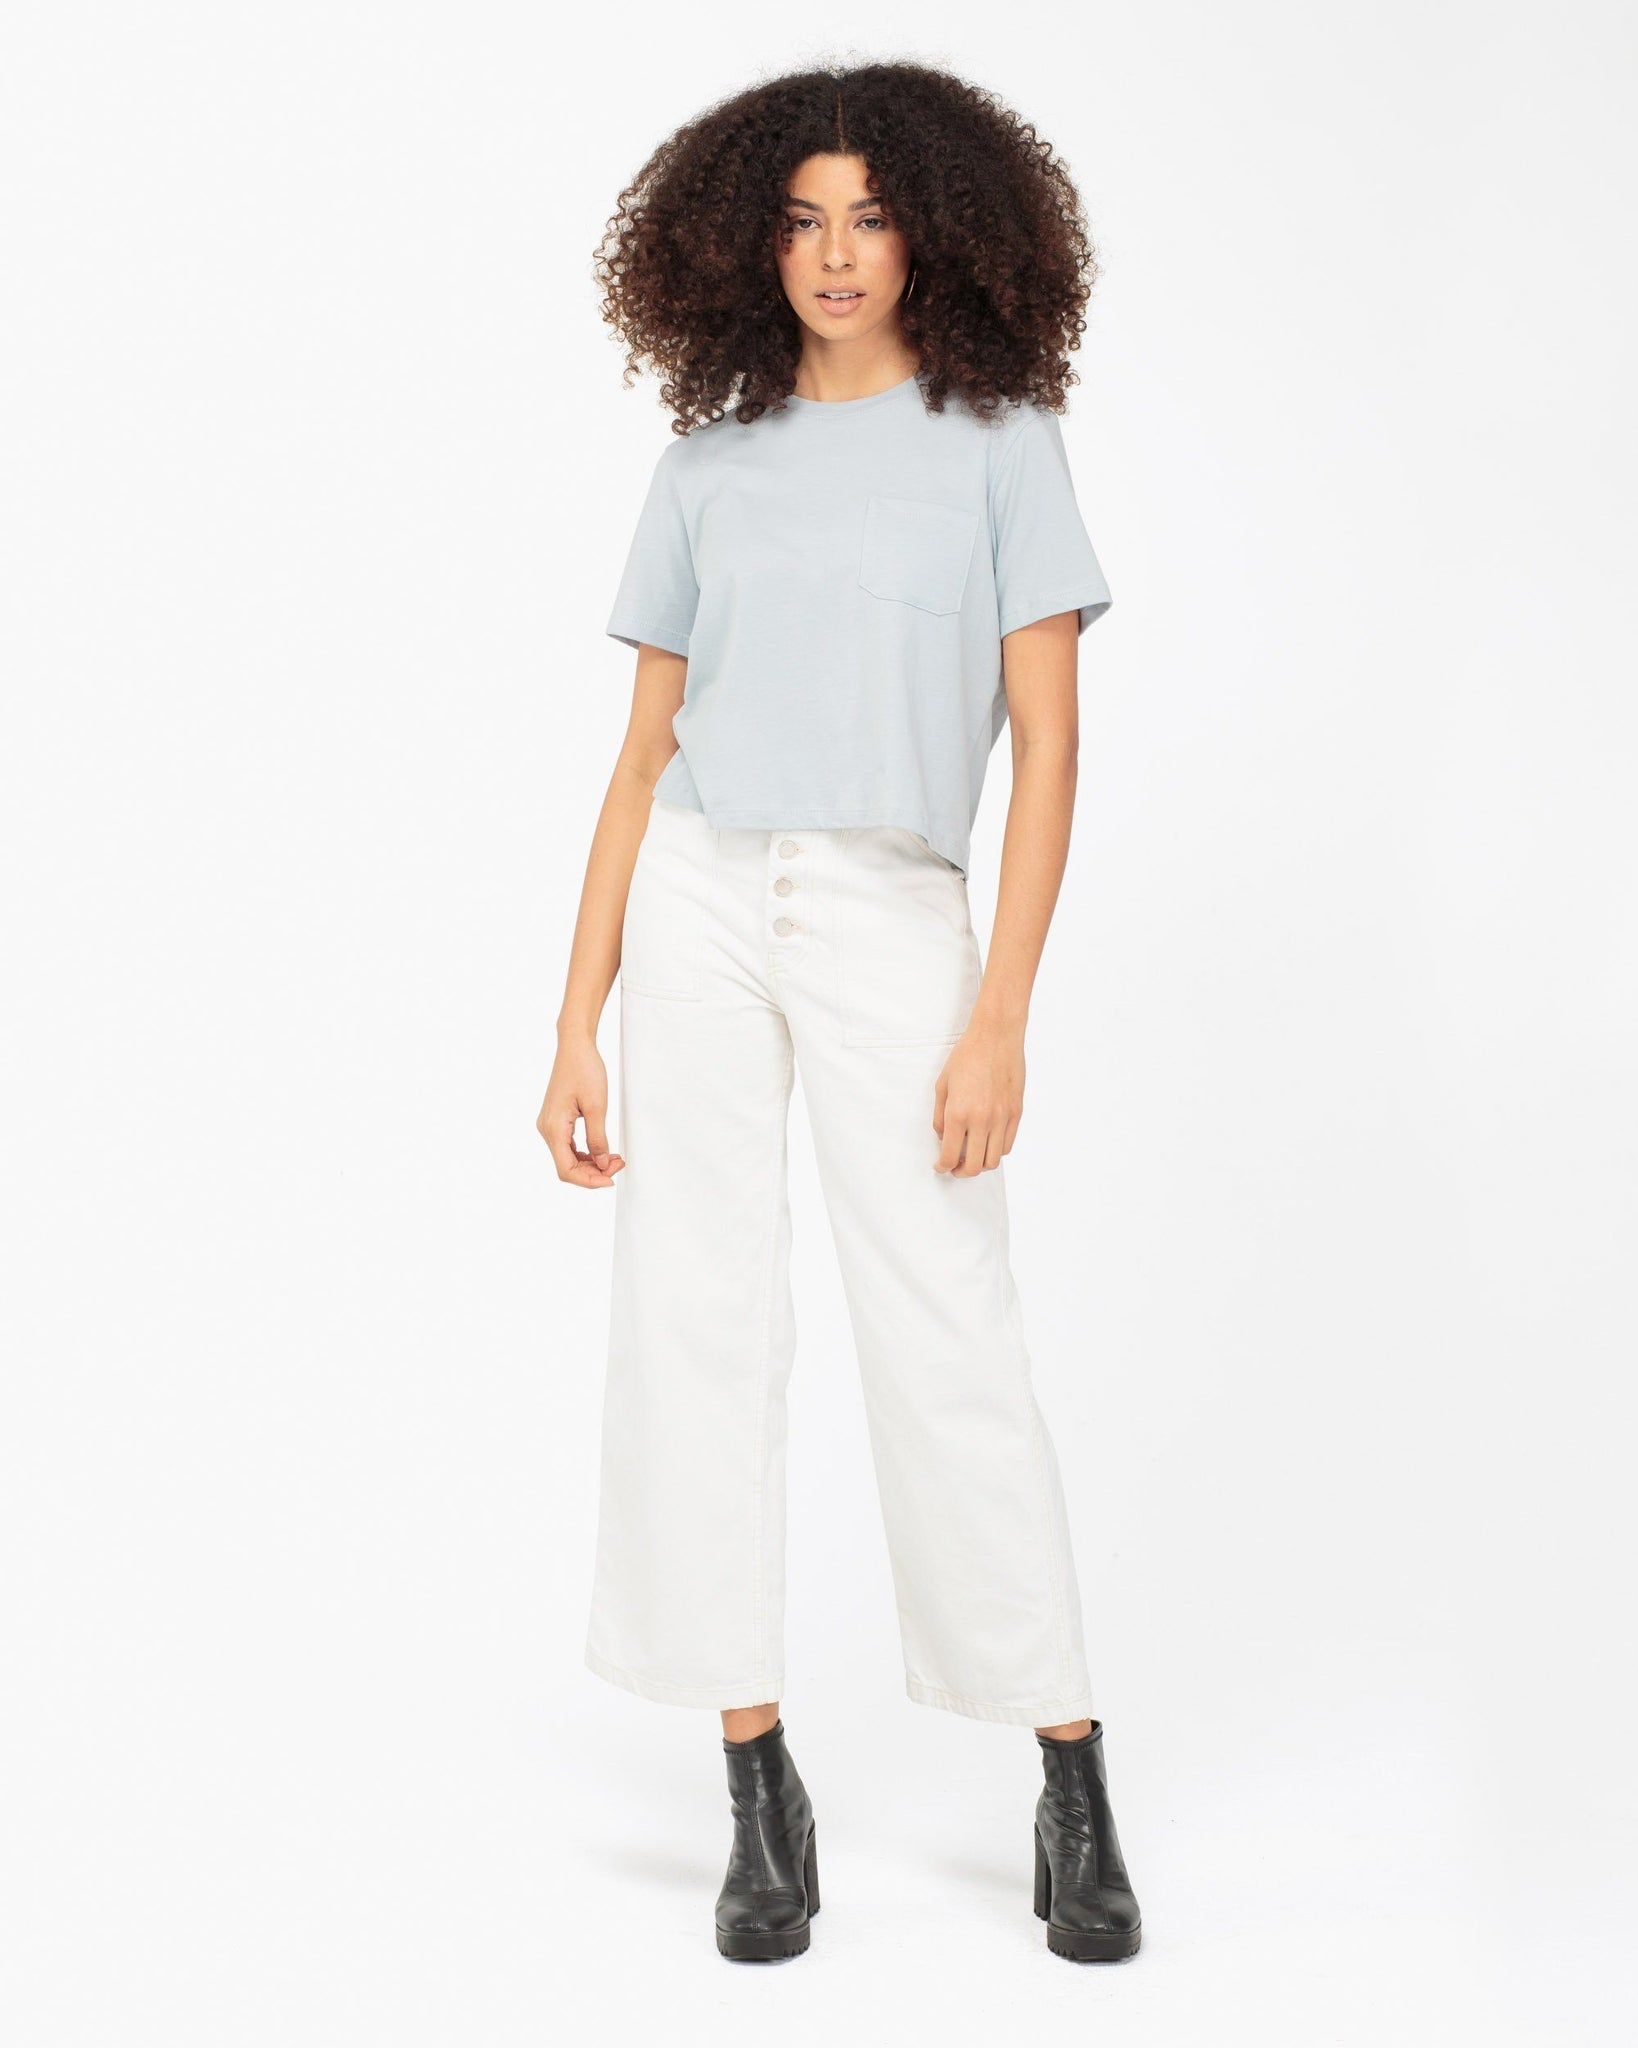 Richer Poorer Women's Boxy Crop Tee